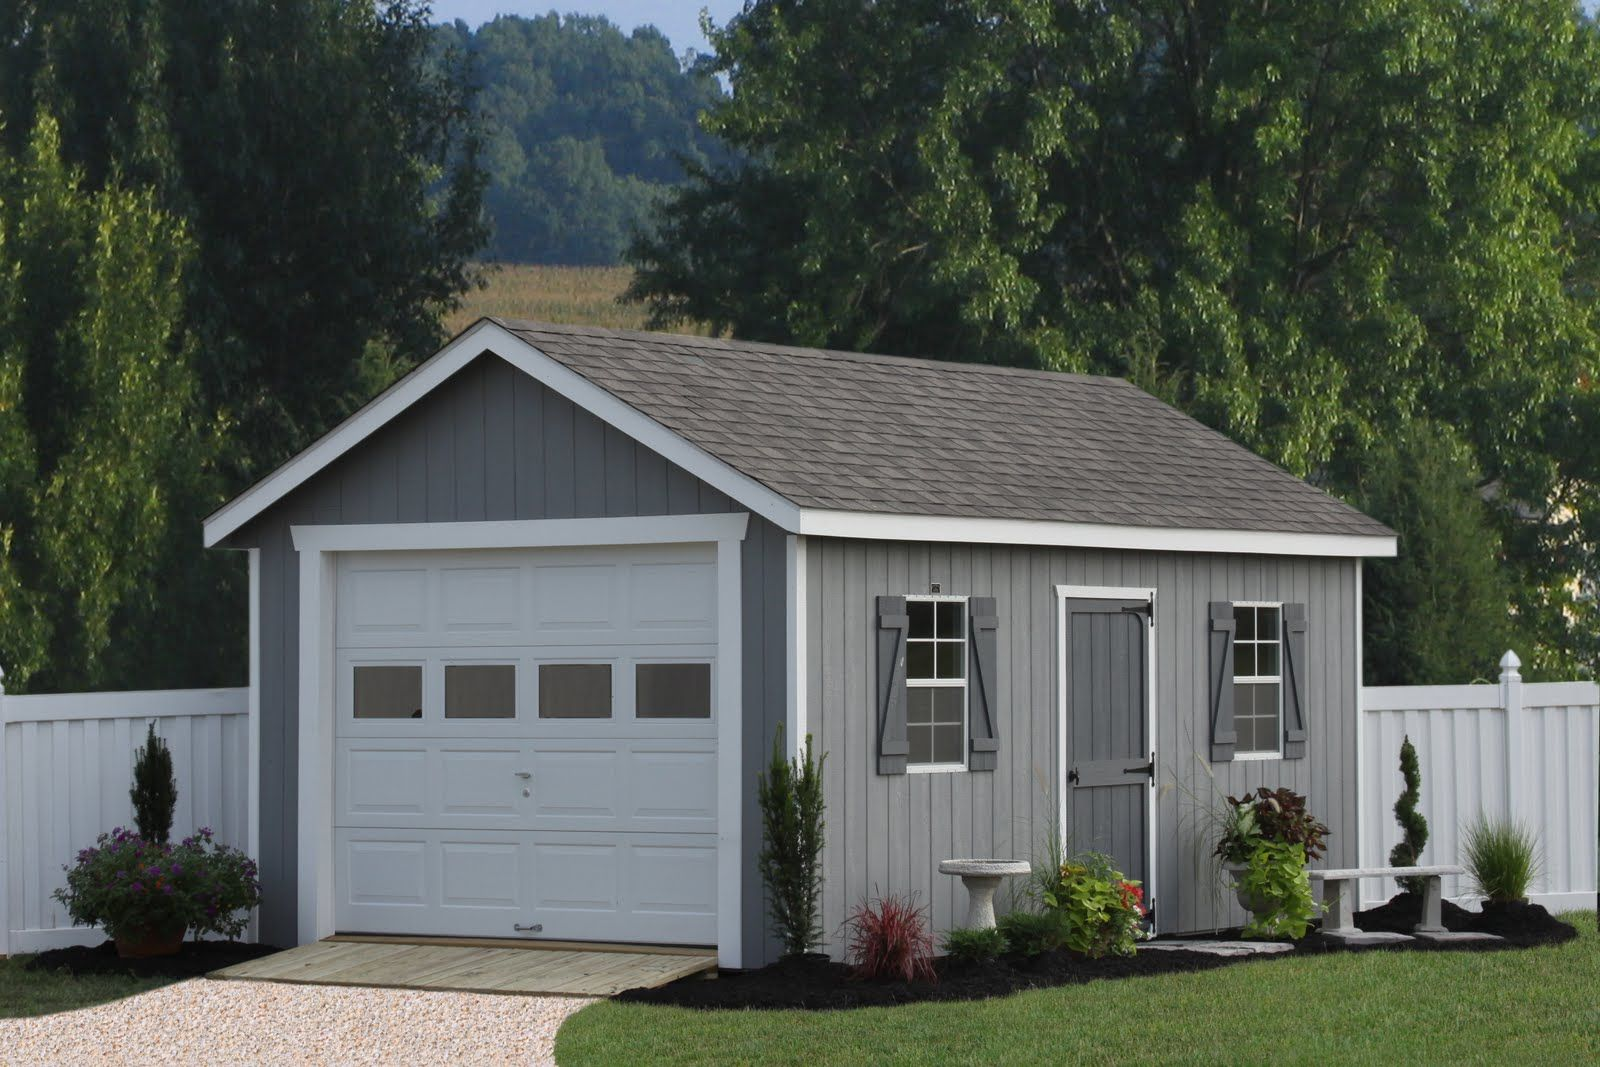 Add on garage plans 12x20 classic one car garage for House in garage